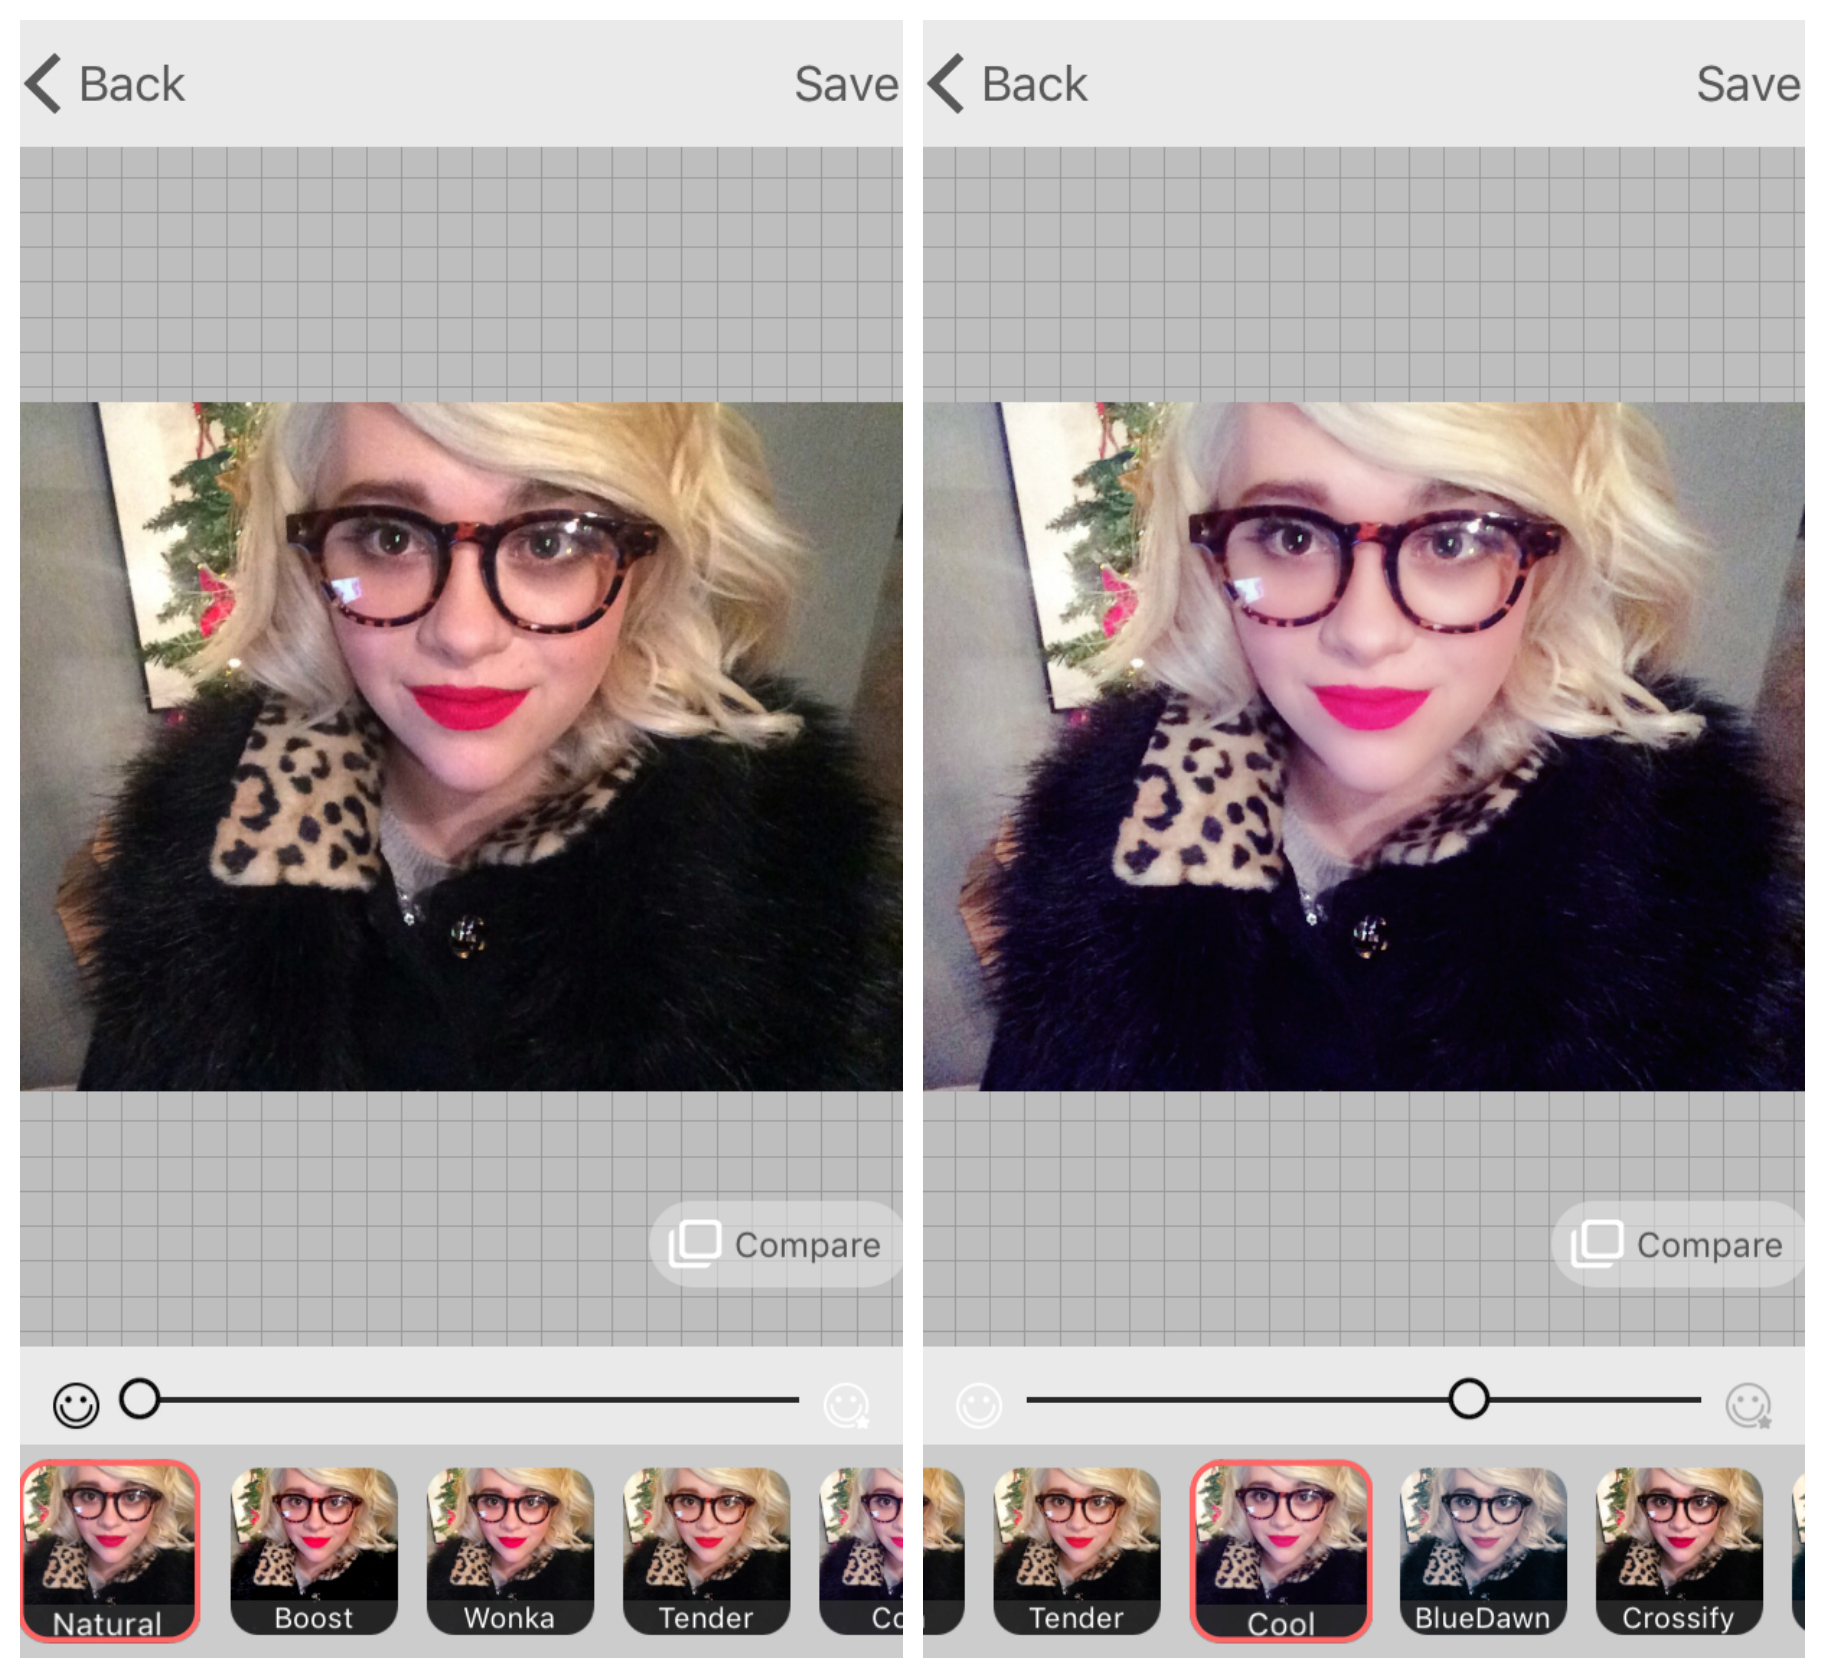 Unedited (left), Microsoft Selfie's 'Cool' filter (right).